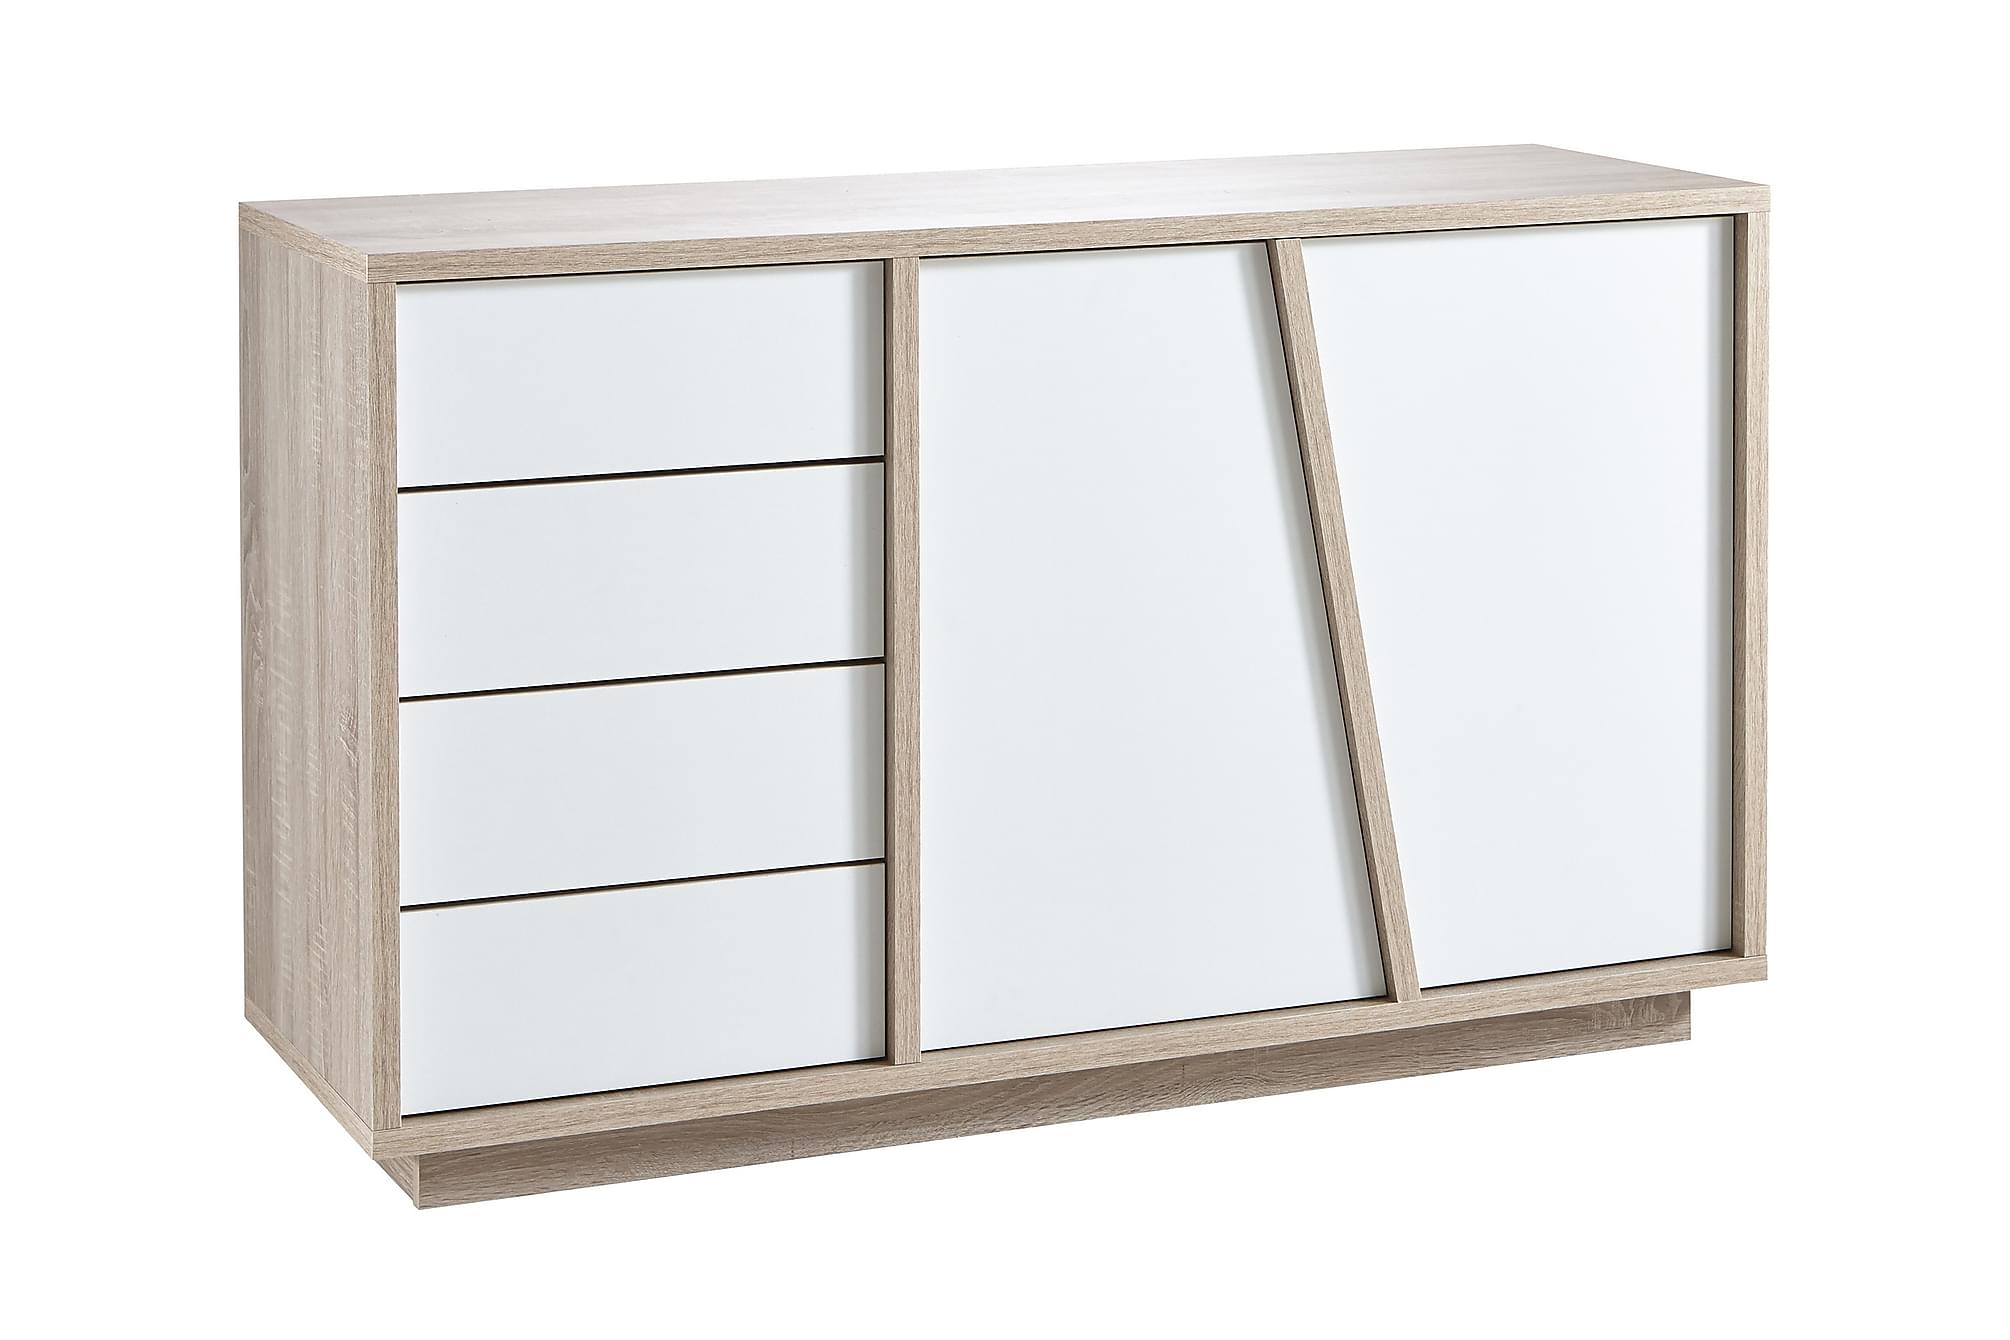 ADVENTURE Sideboard 123 Ek-Borstad/Vit, Sideboards